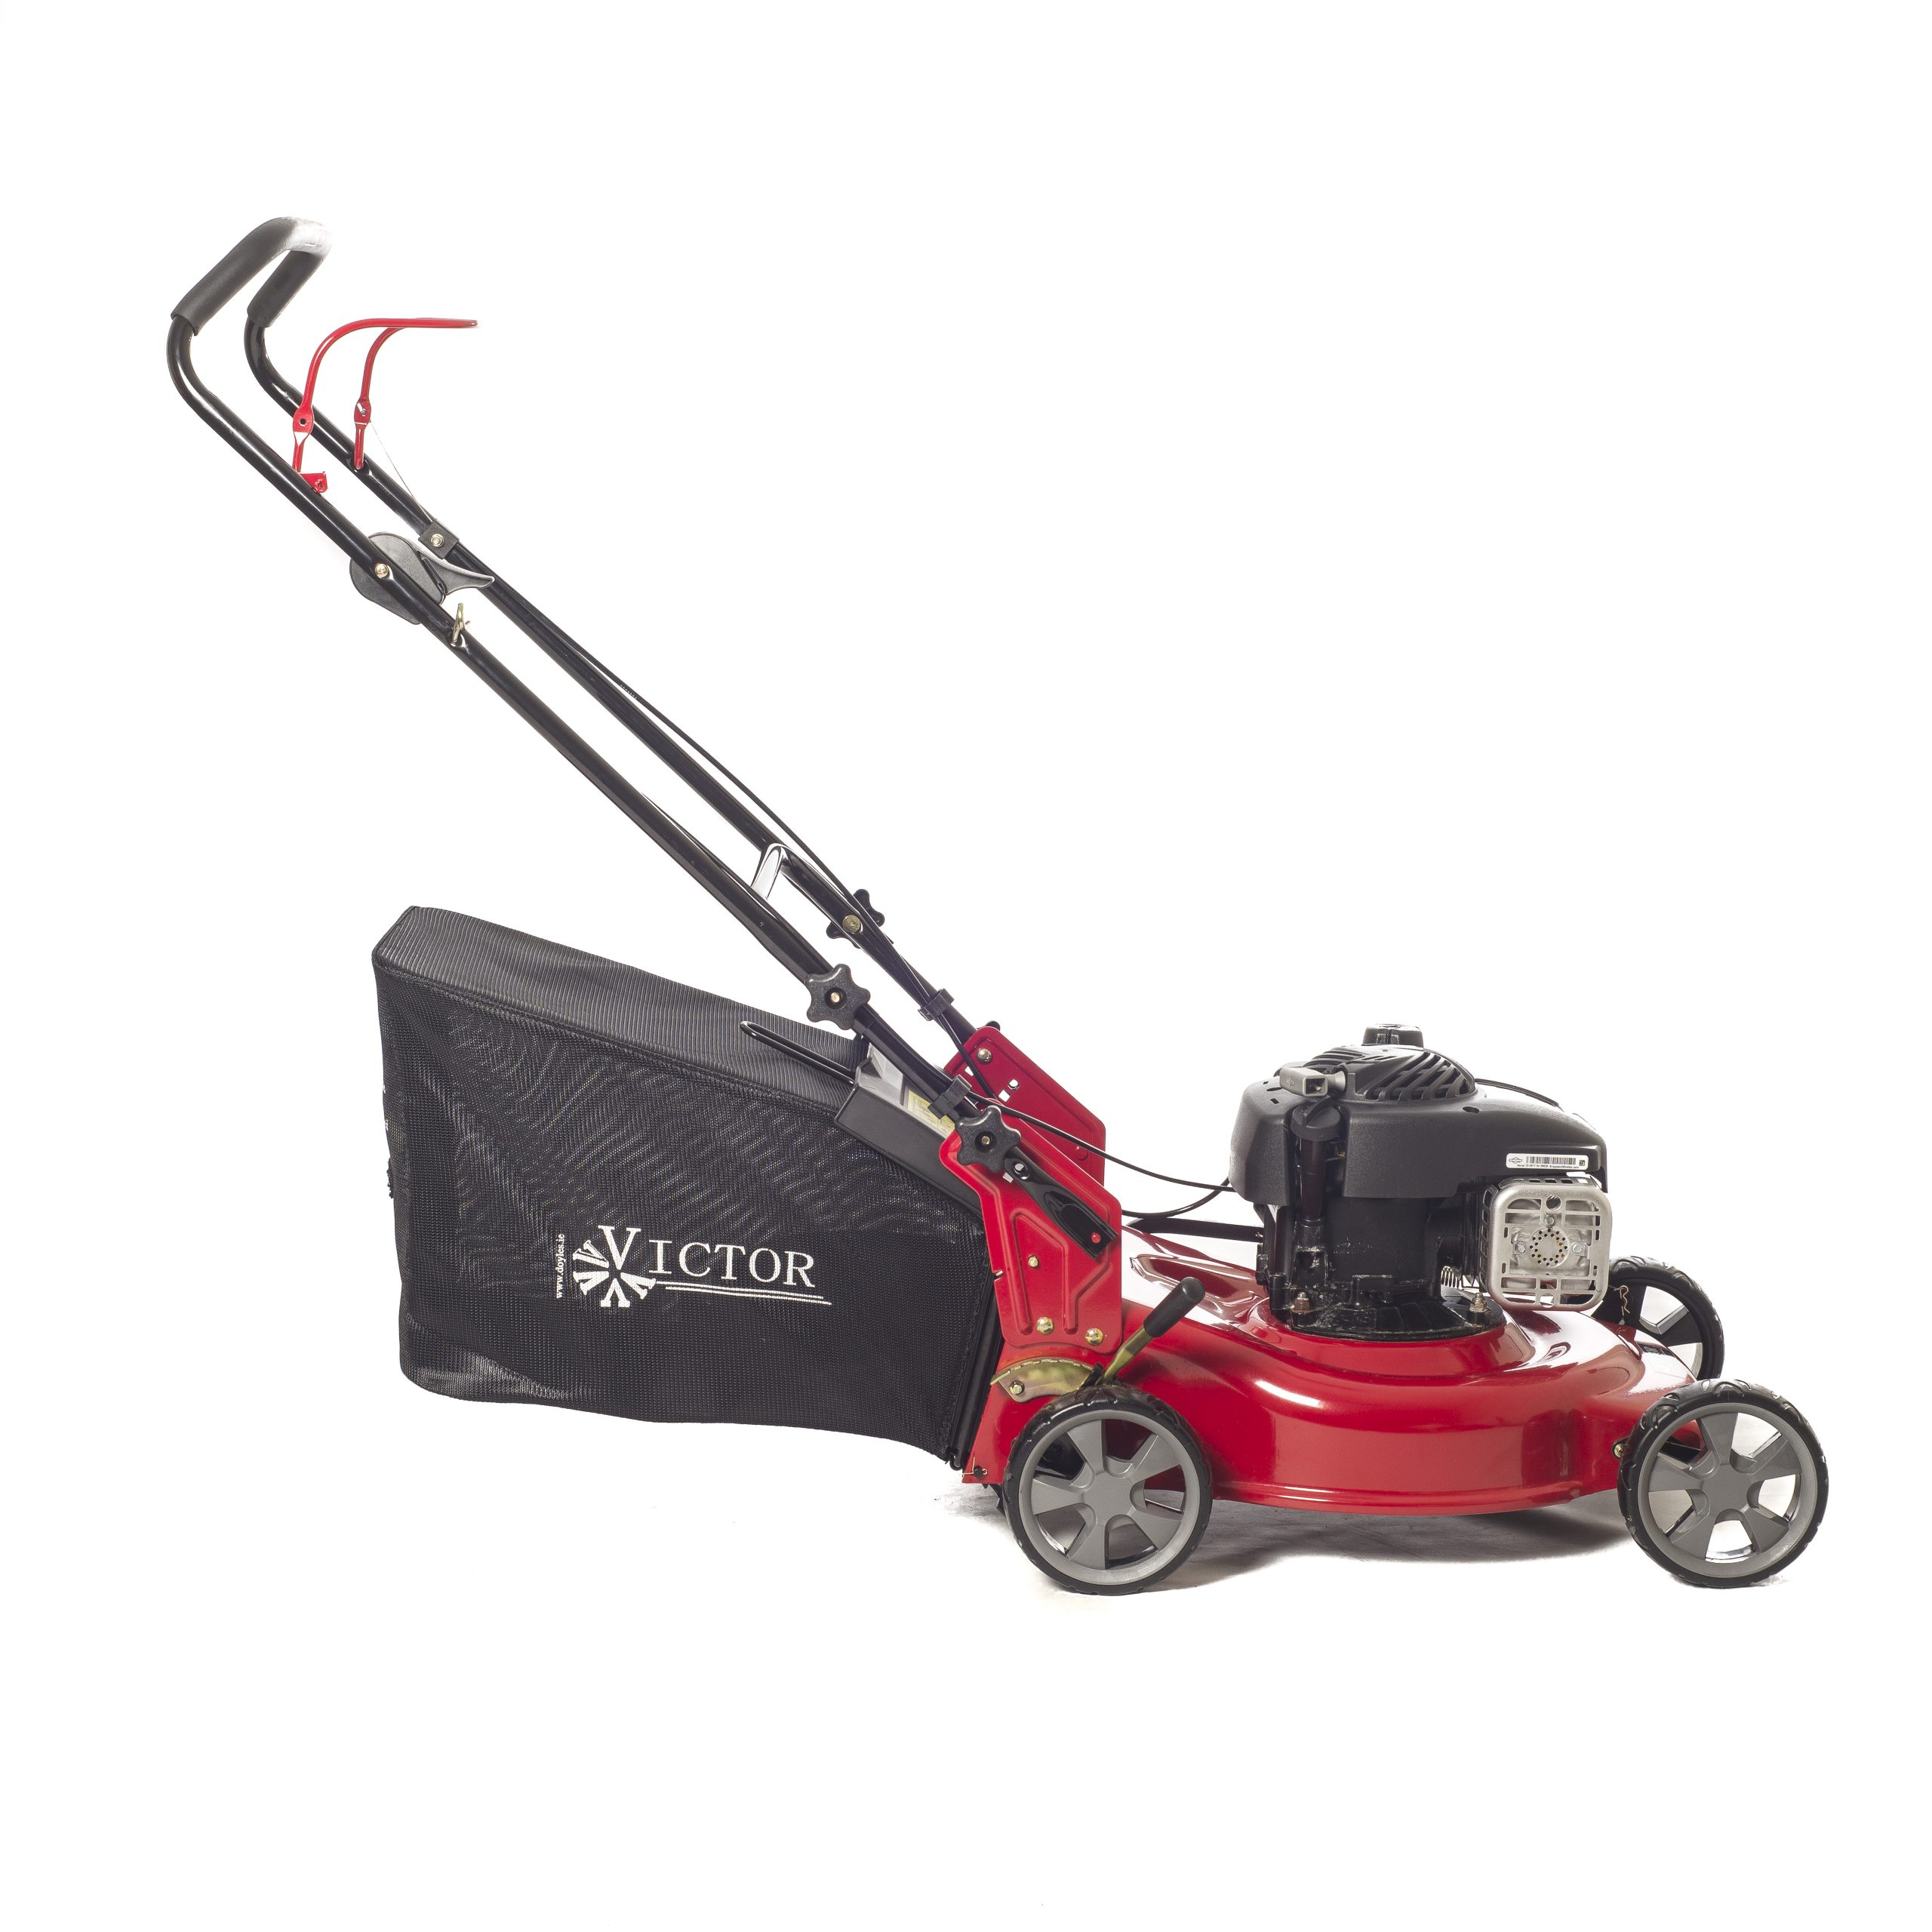 VICTOR Lawnmower WYZ22HV